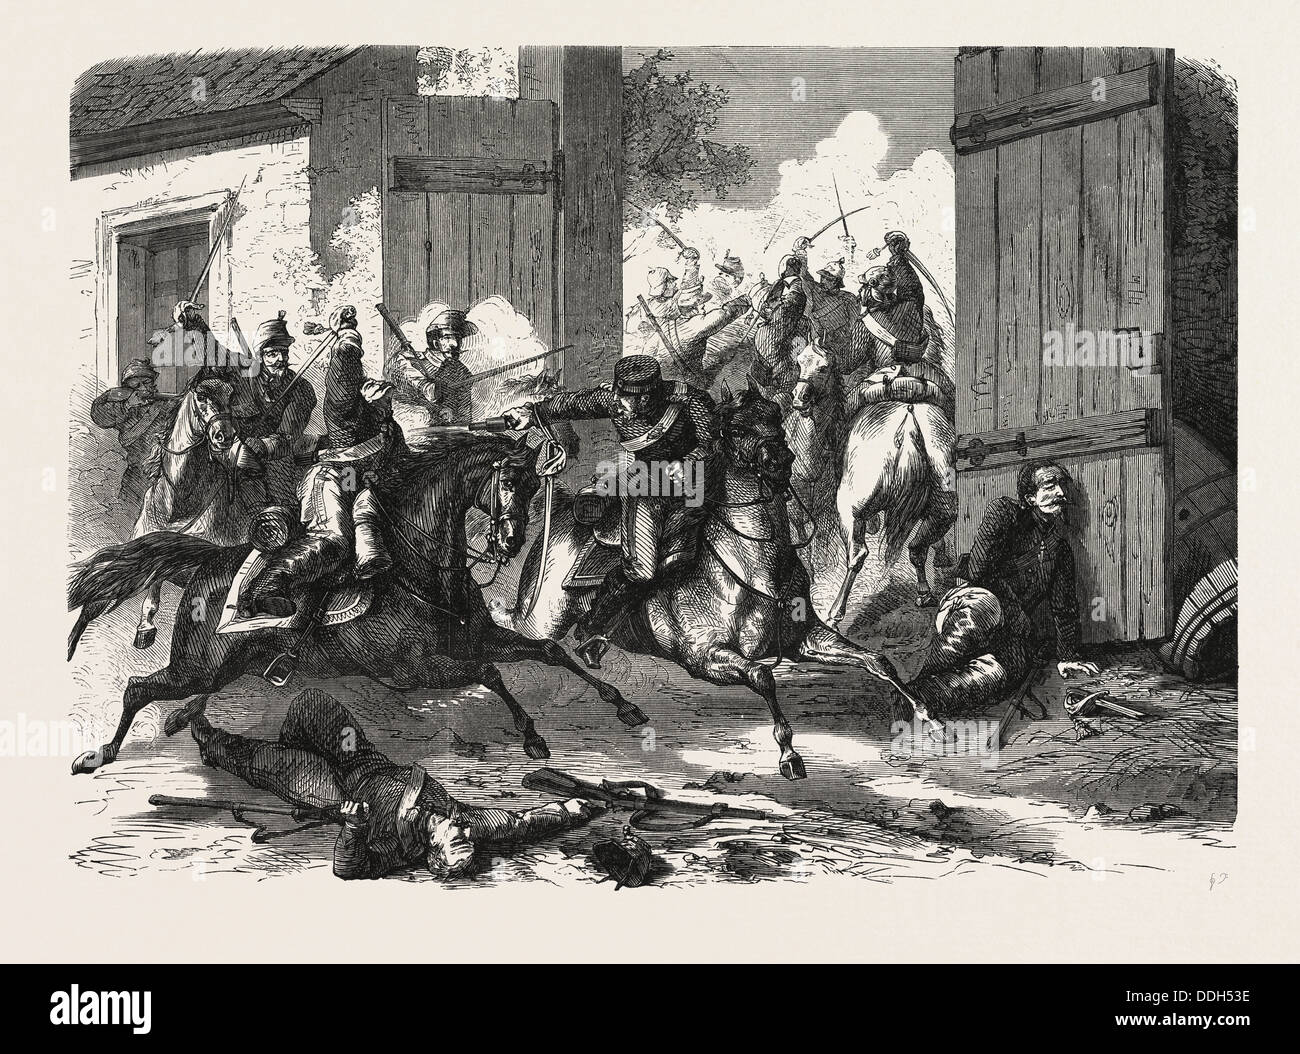 FRANCO-PRUSSIAN WAR: GERMAN CAVALRY ATTACKED BY THE FRENCH, AT NIEDERBRONN, 1870 - Stock Image